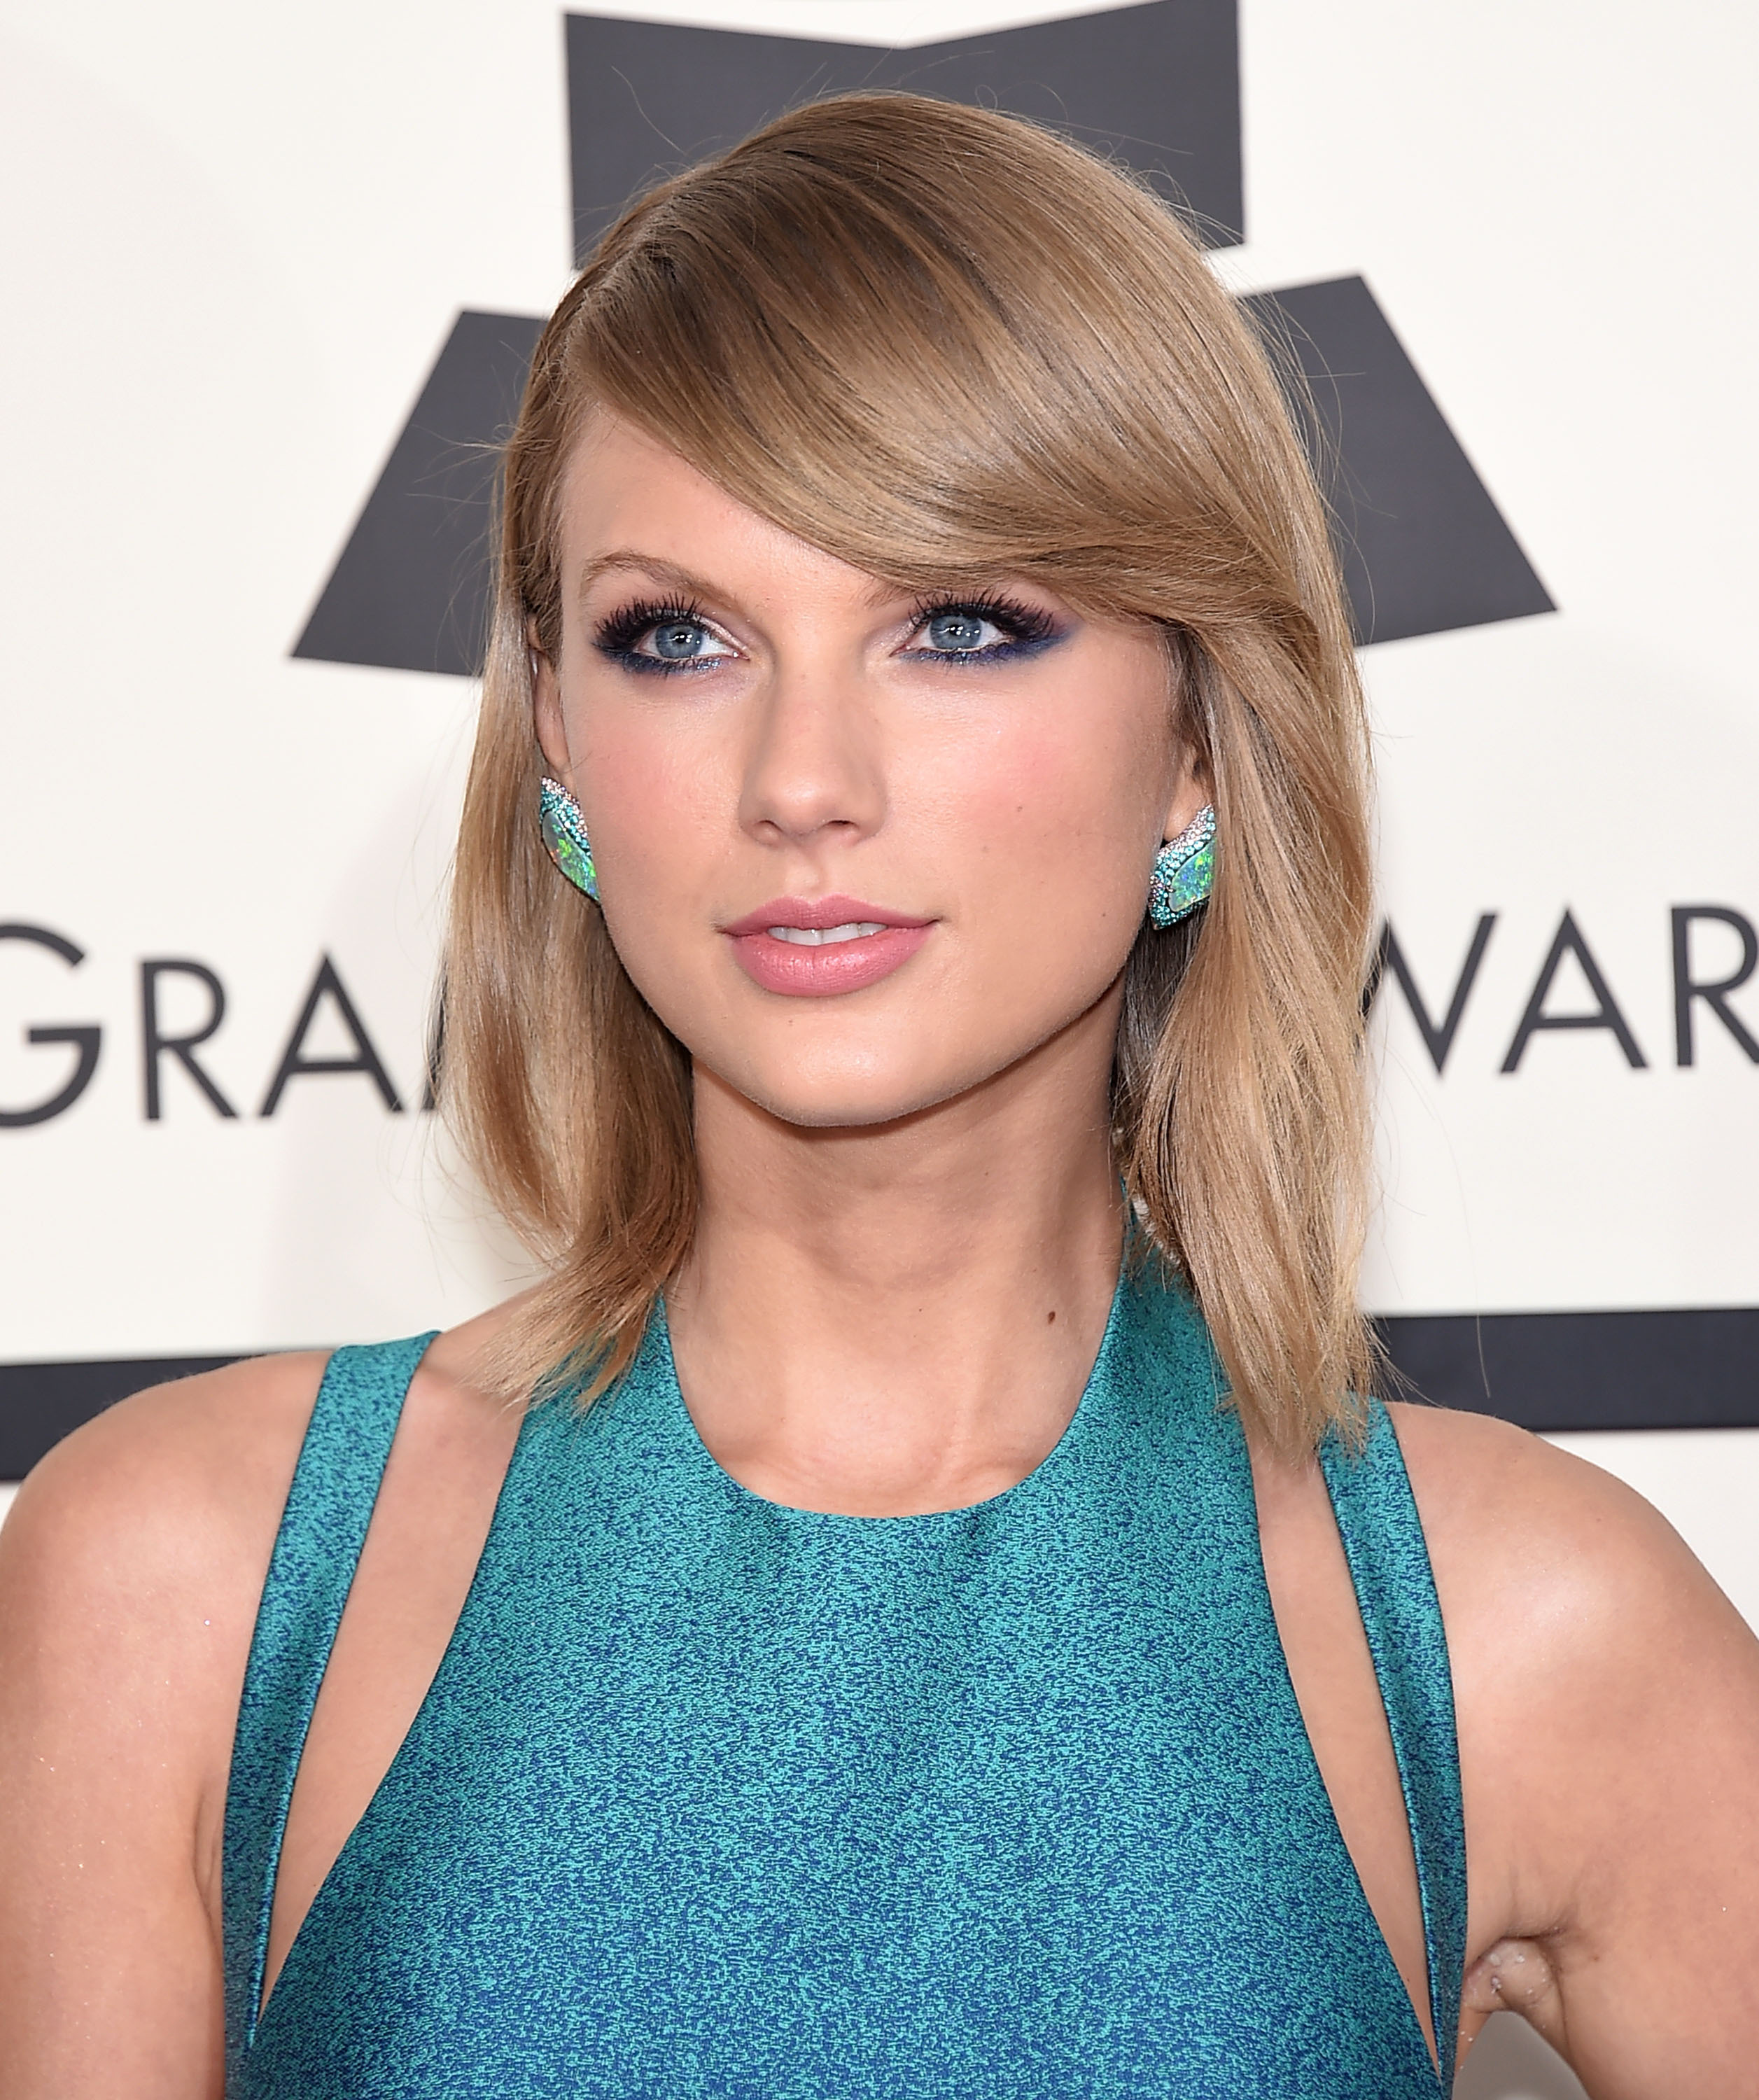 Taylor Swift Sues Radio Host For Allegedly Groping Her The Mary Sue